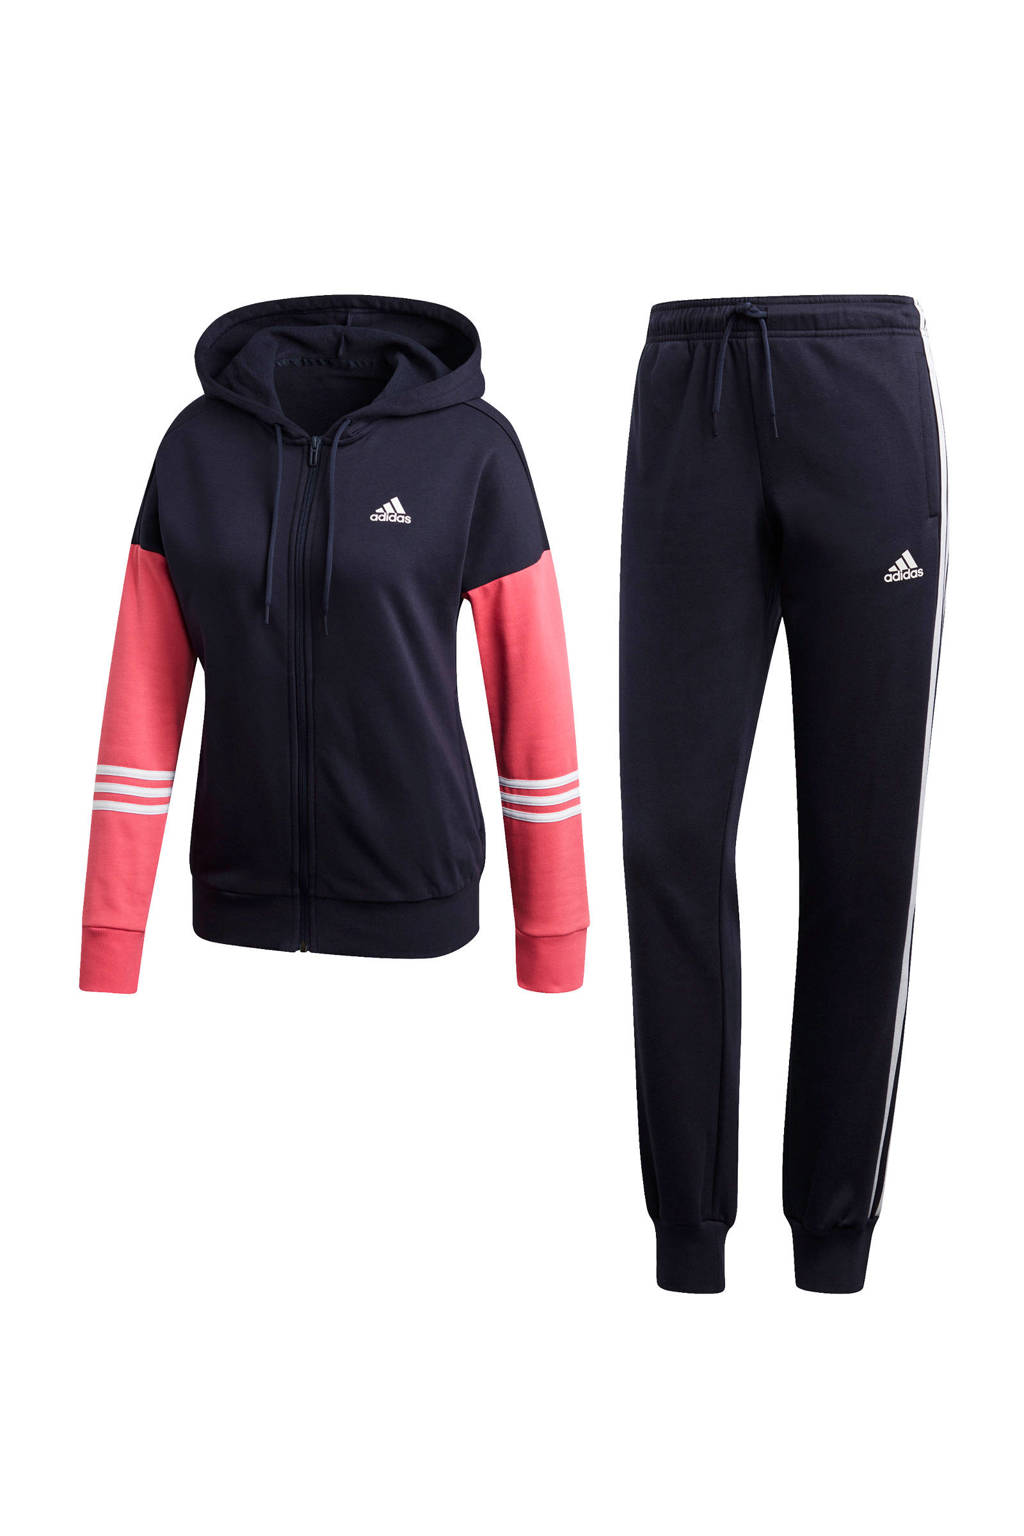 adidas performance trainingspak zwart/roze, Zwart/roze